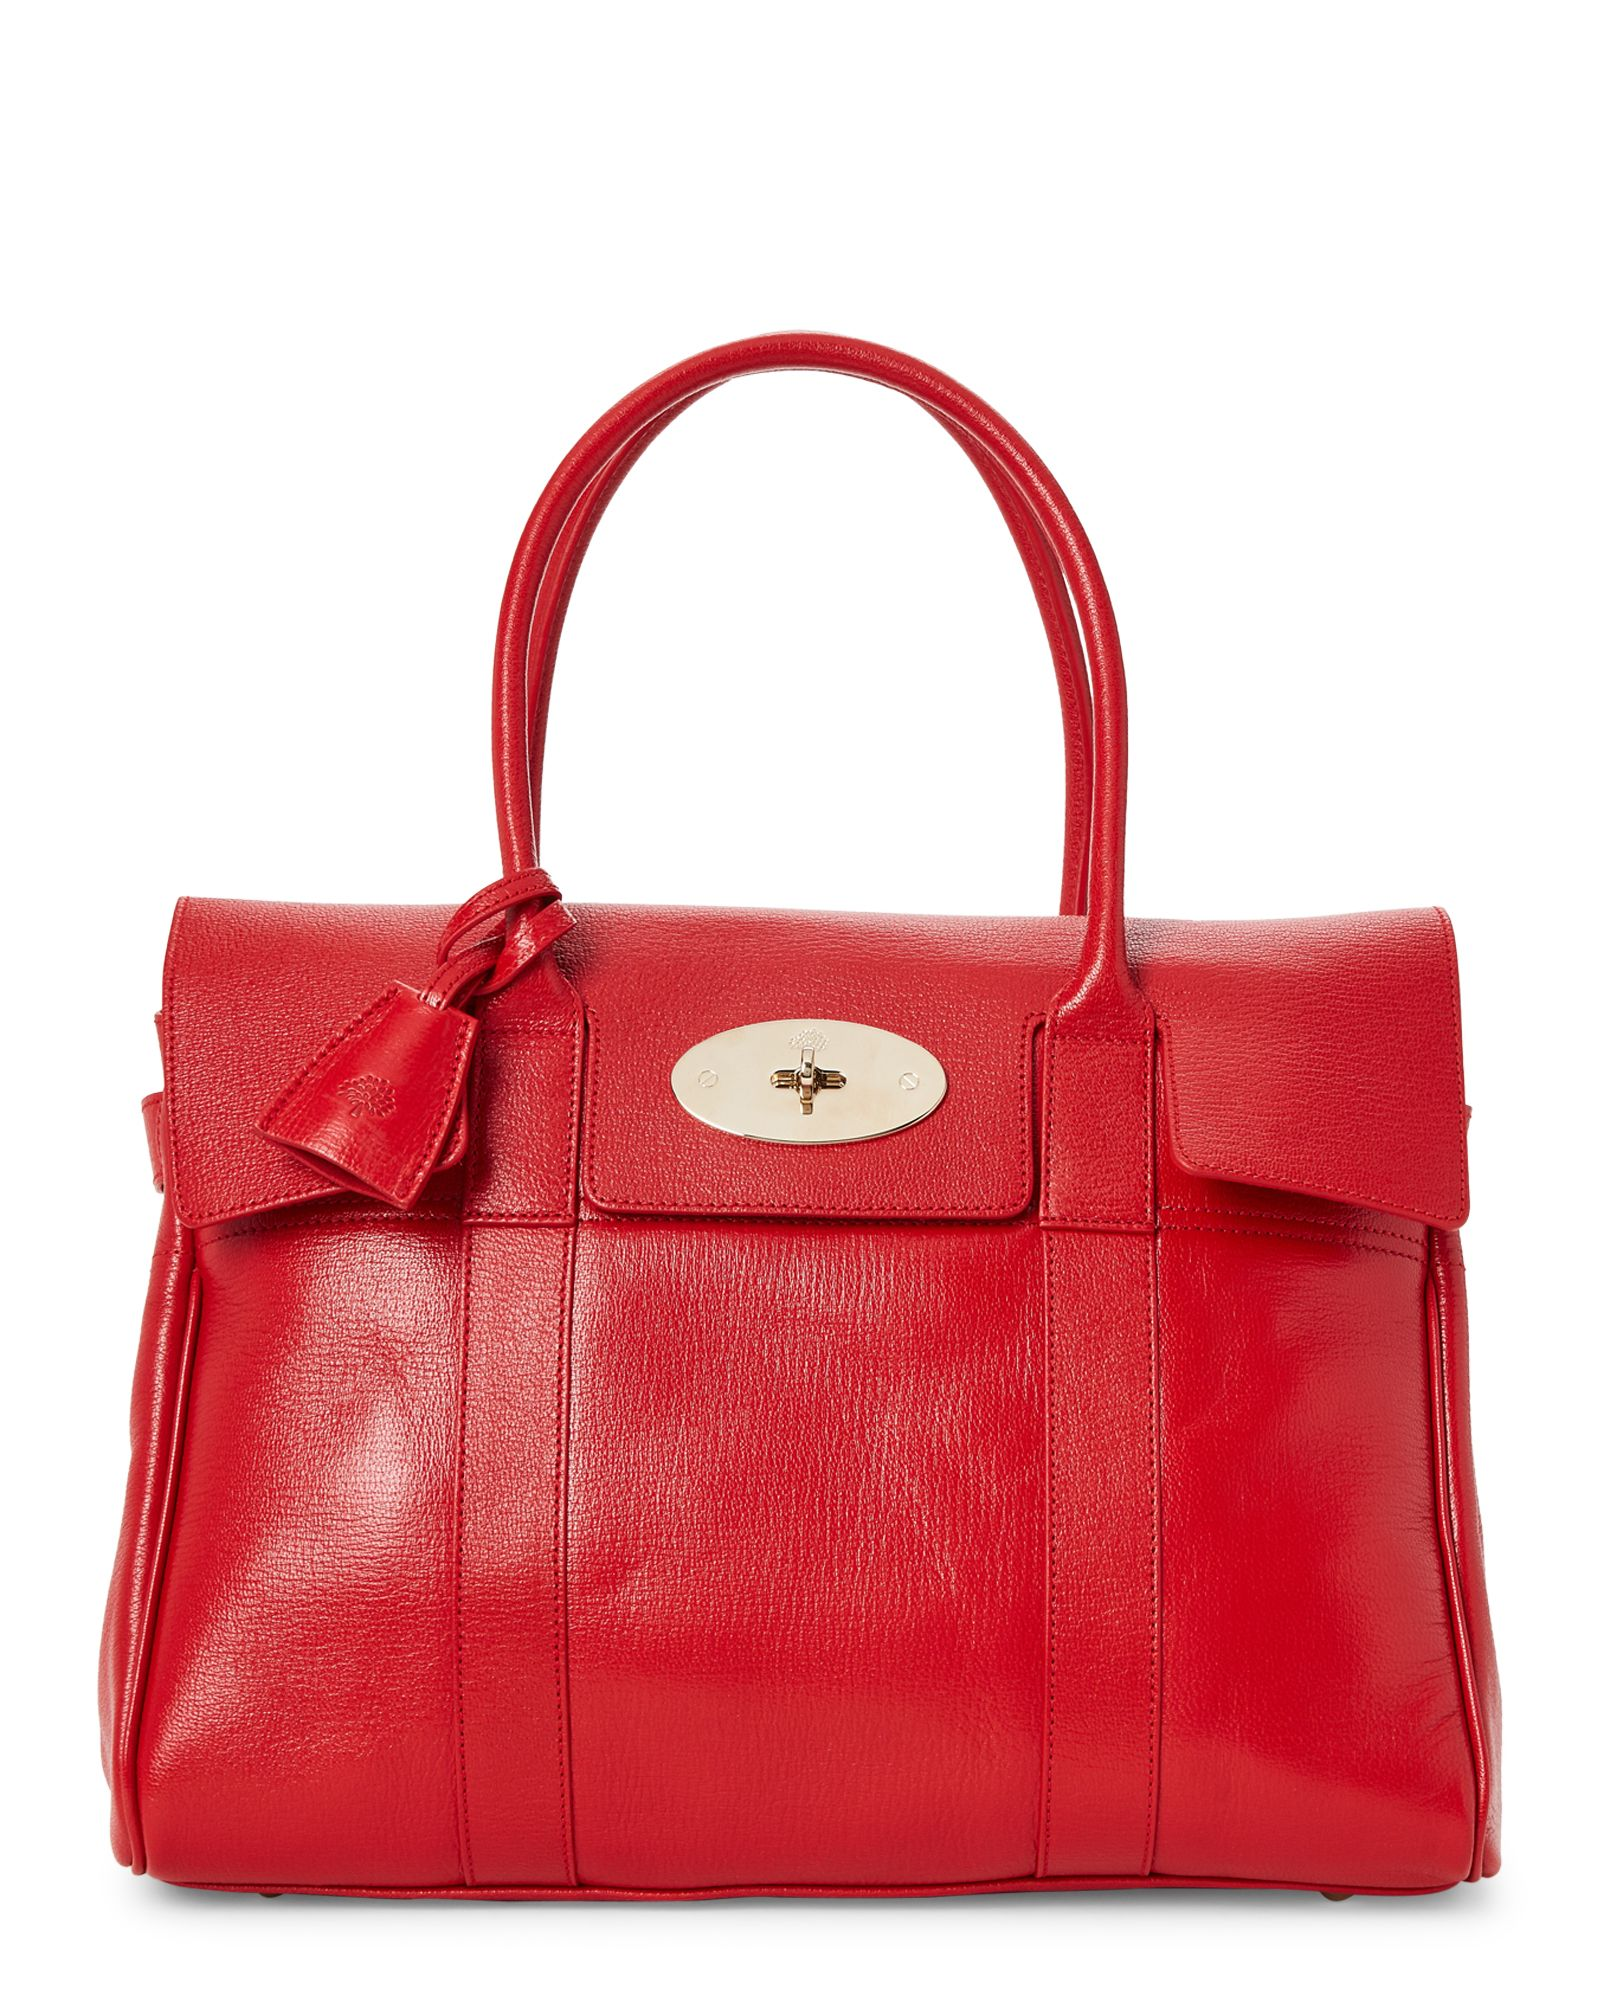 81f2a7394324 Cole Haan - Esme Leather Work Tote Bag | Worldly Woman's Work Wear ...